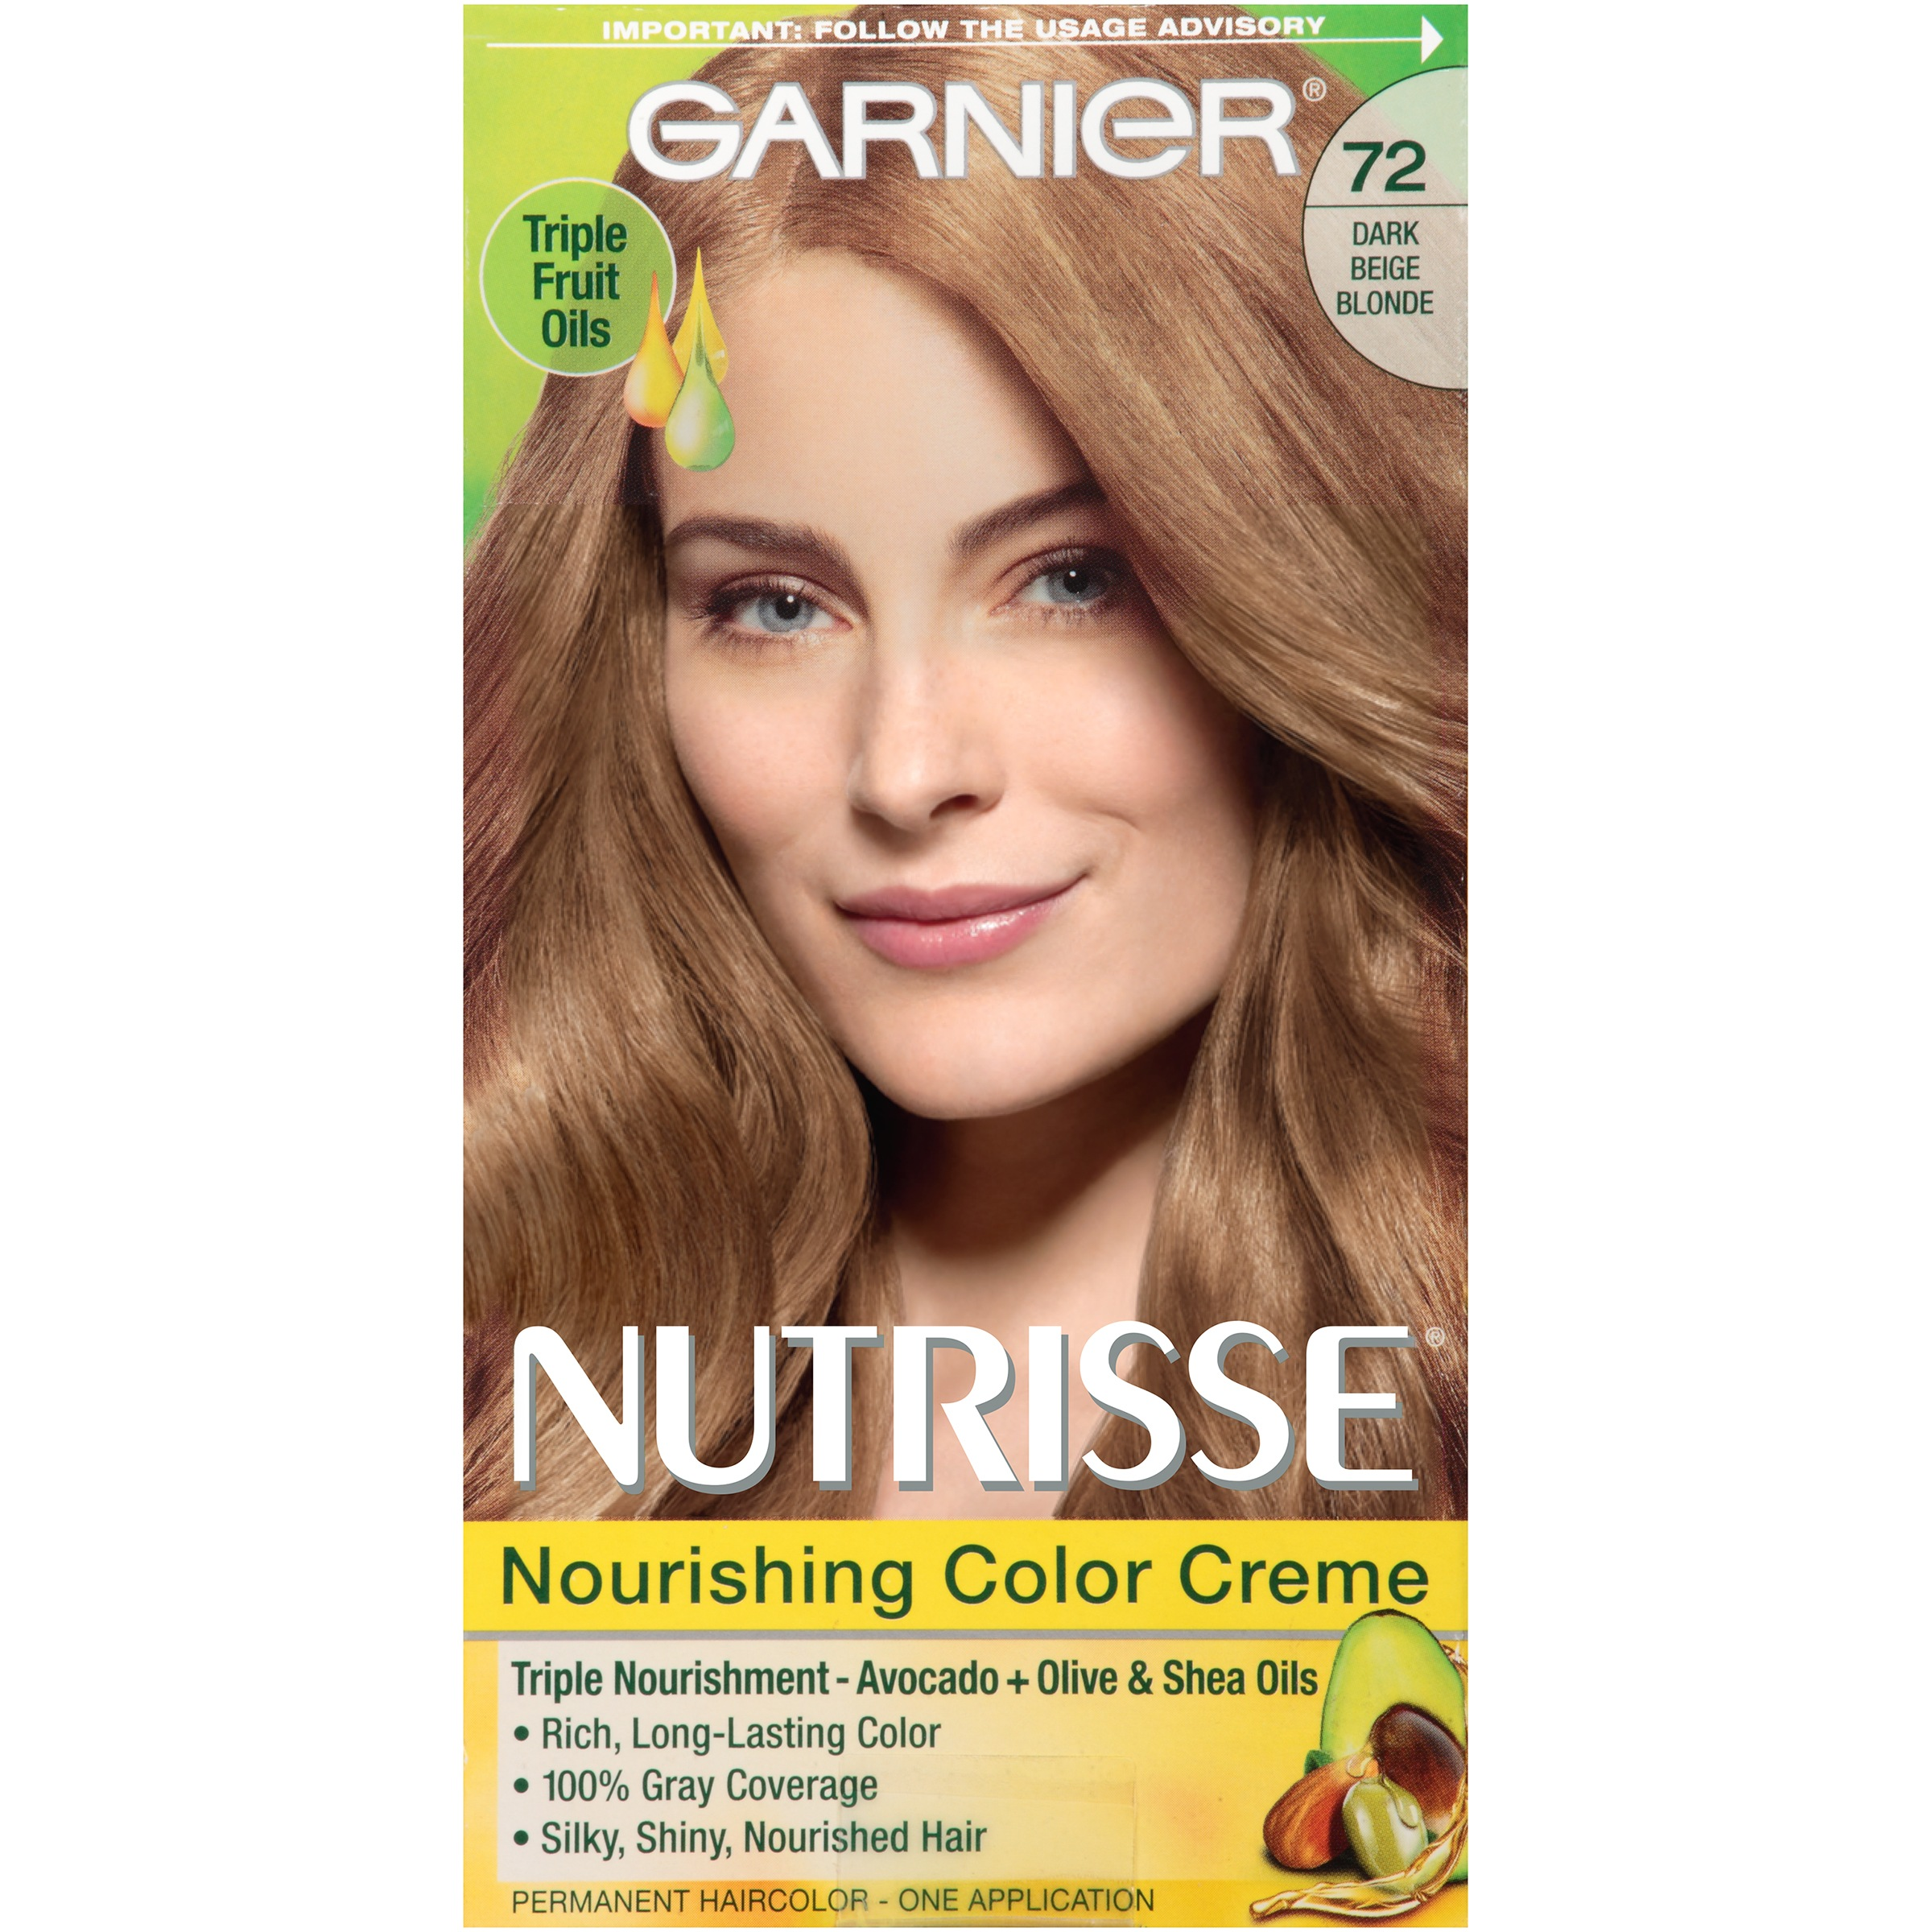 garnier nutrisse nourishing color creme hair color 72